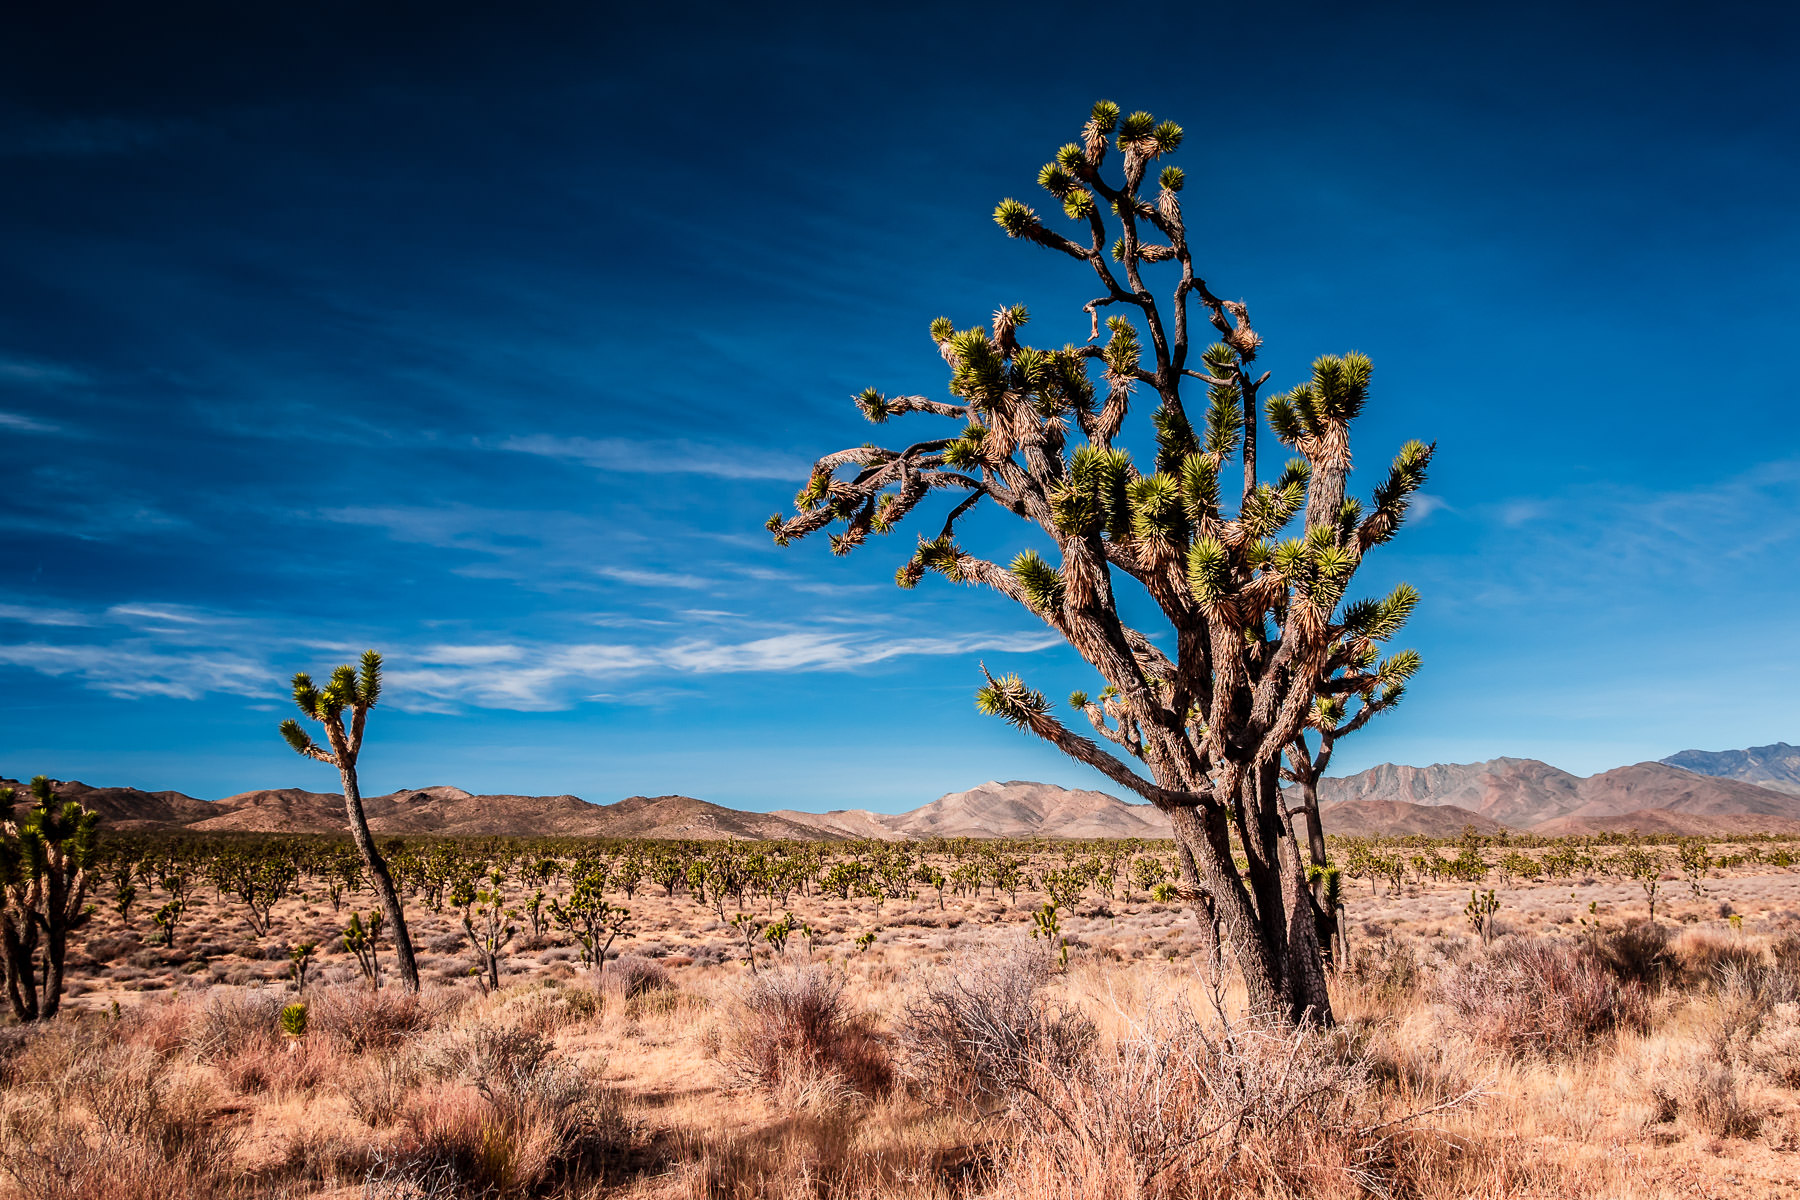 Joshua trees rise from the desert at California's Mojave National Preserve.